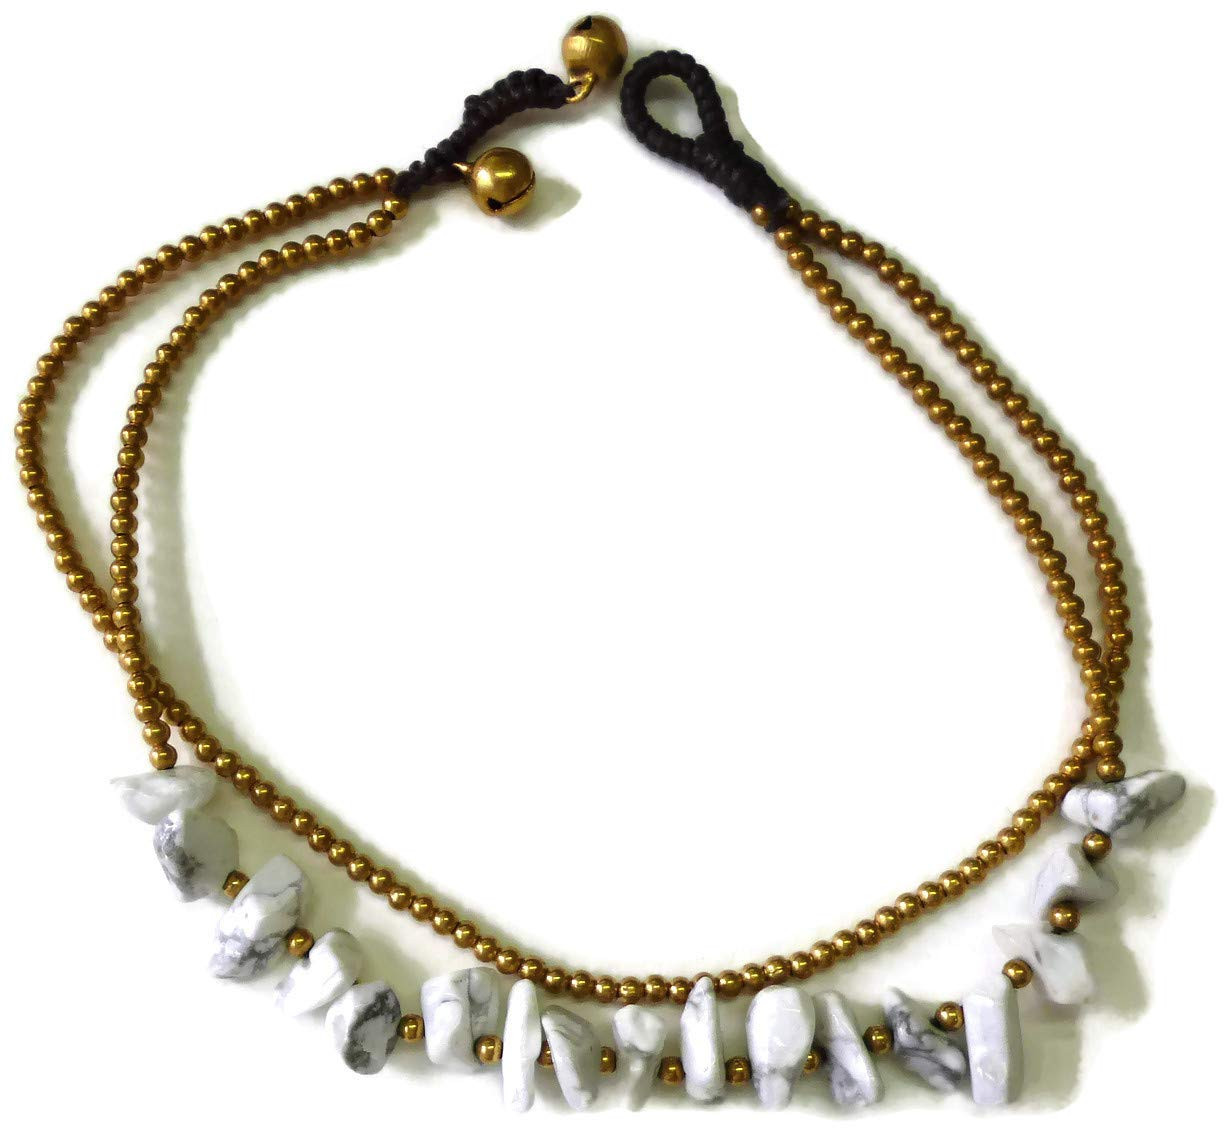 Moose546 Ankle Bracelets with White Turquoise Chips and Bells 11 Inches Mini Beads Beach Bohemian Style Jewelry FC-051